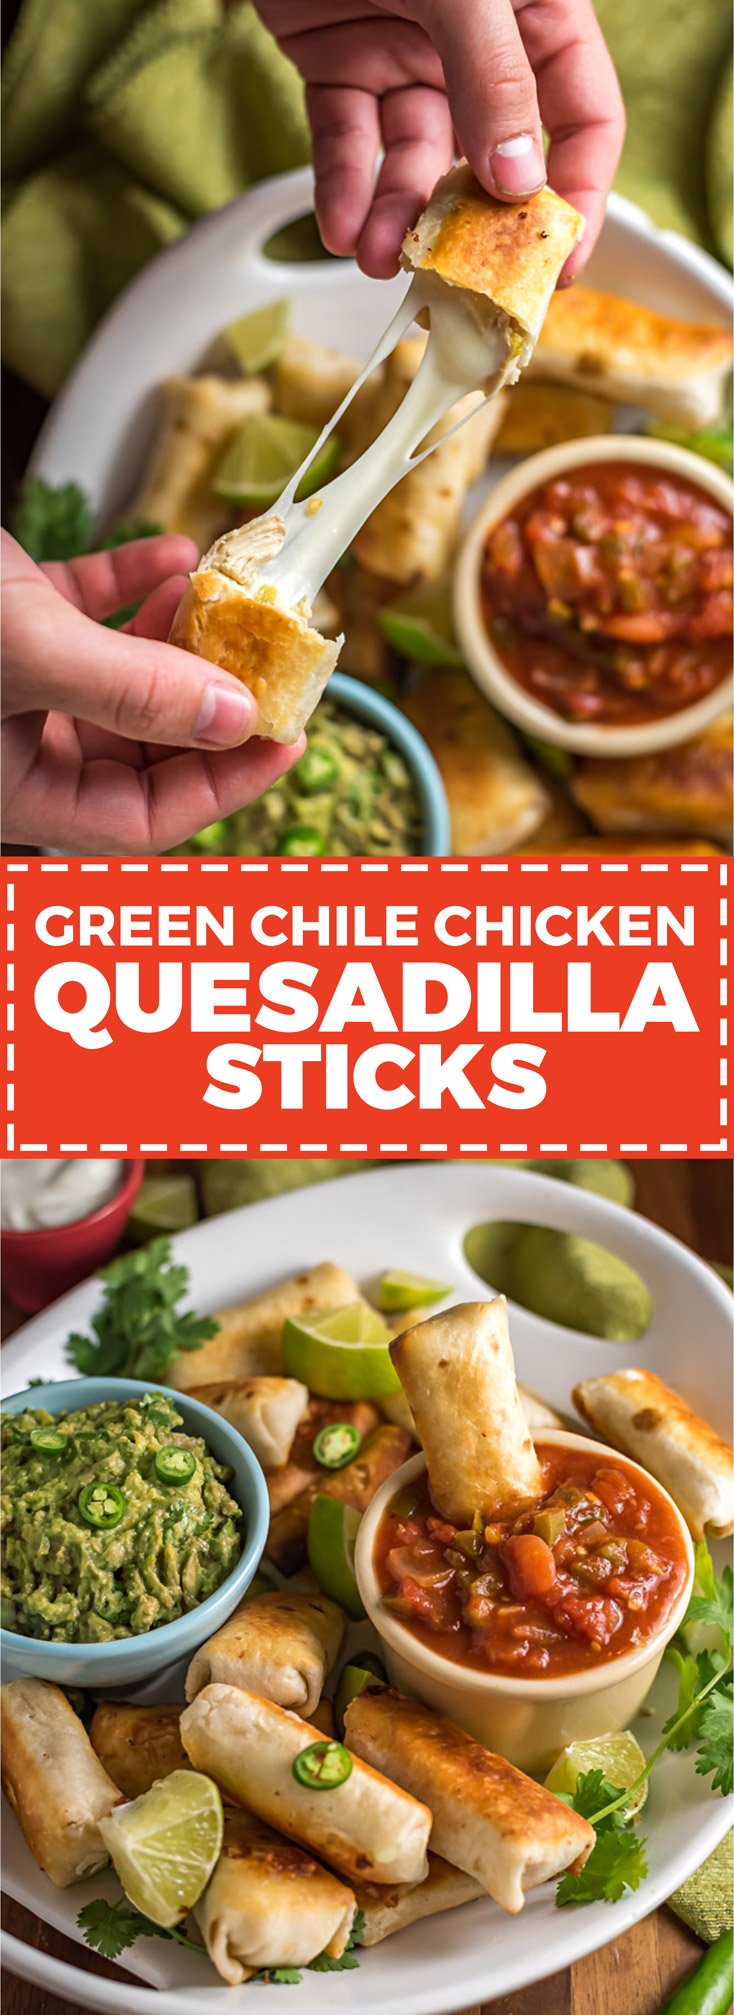 Green Chile Chicken Quesadilla Sticks. These easy-to-make appetizers are the love child of chicken quesadillas and mozzarella sticks. In other words, they're the snack you've always wished for. | hostthetoast.com